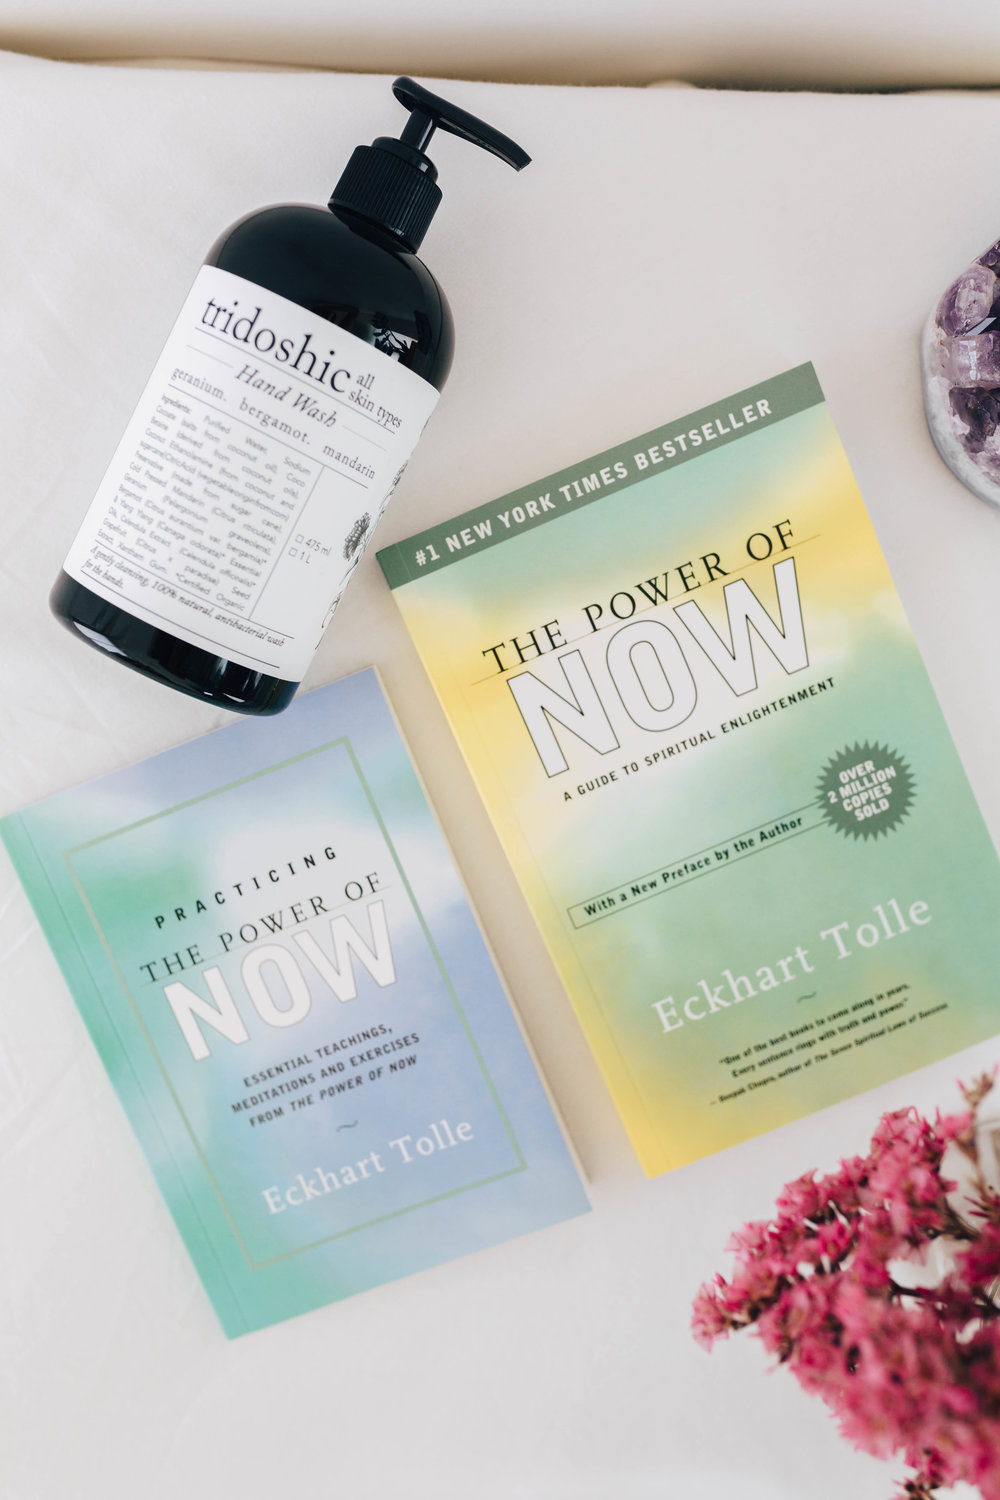 --- $75 gift ---- + 'The Power of Now' by Eckhart Tolle book + 'Practicing the Power of Now' by Eckhart Tolle book + Rasasara tridoshic hand wash 475ml